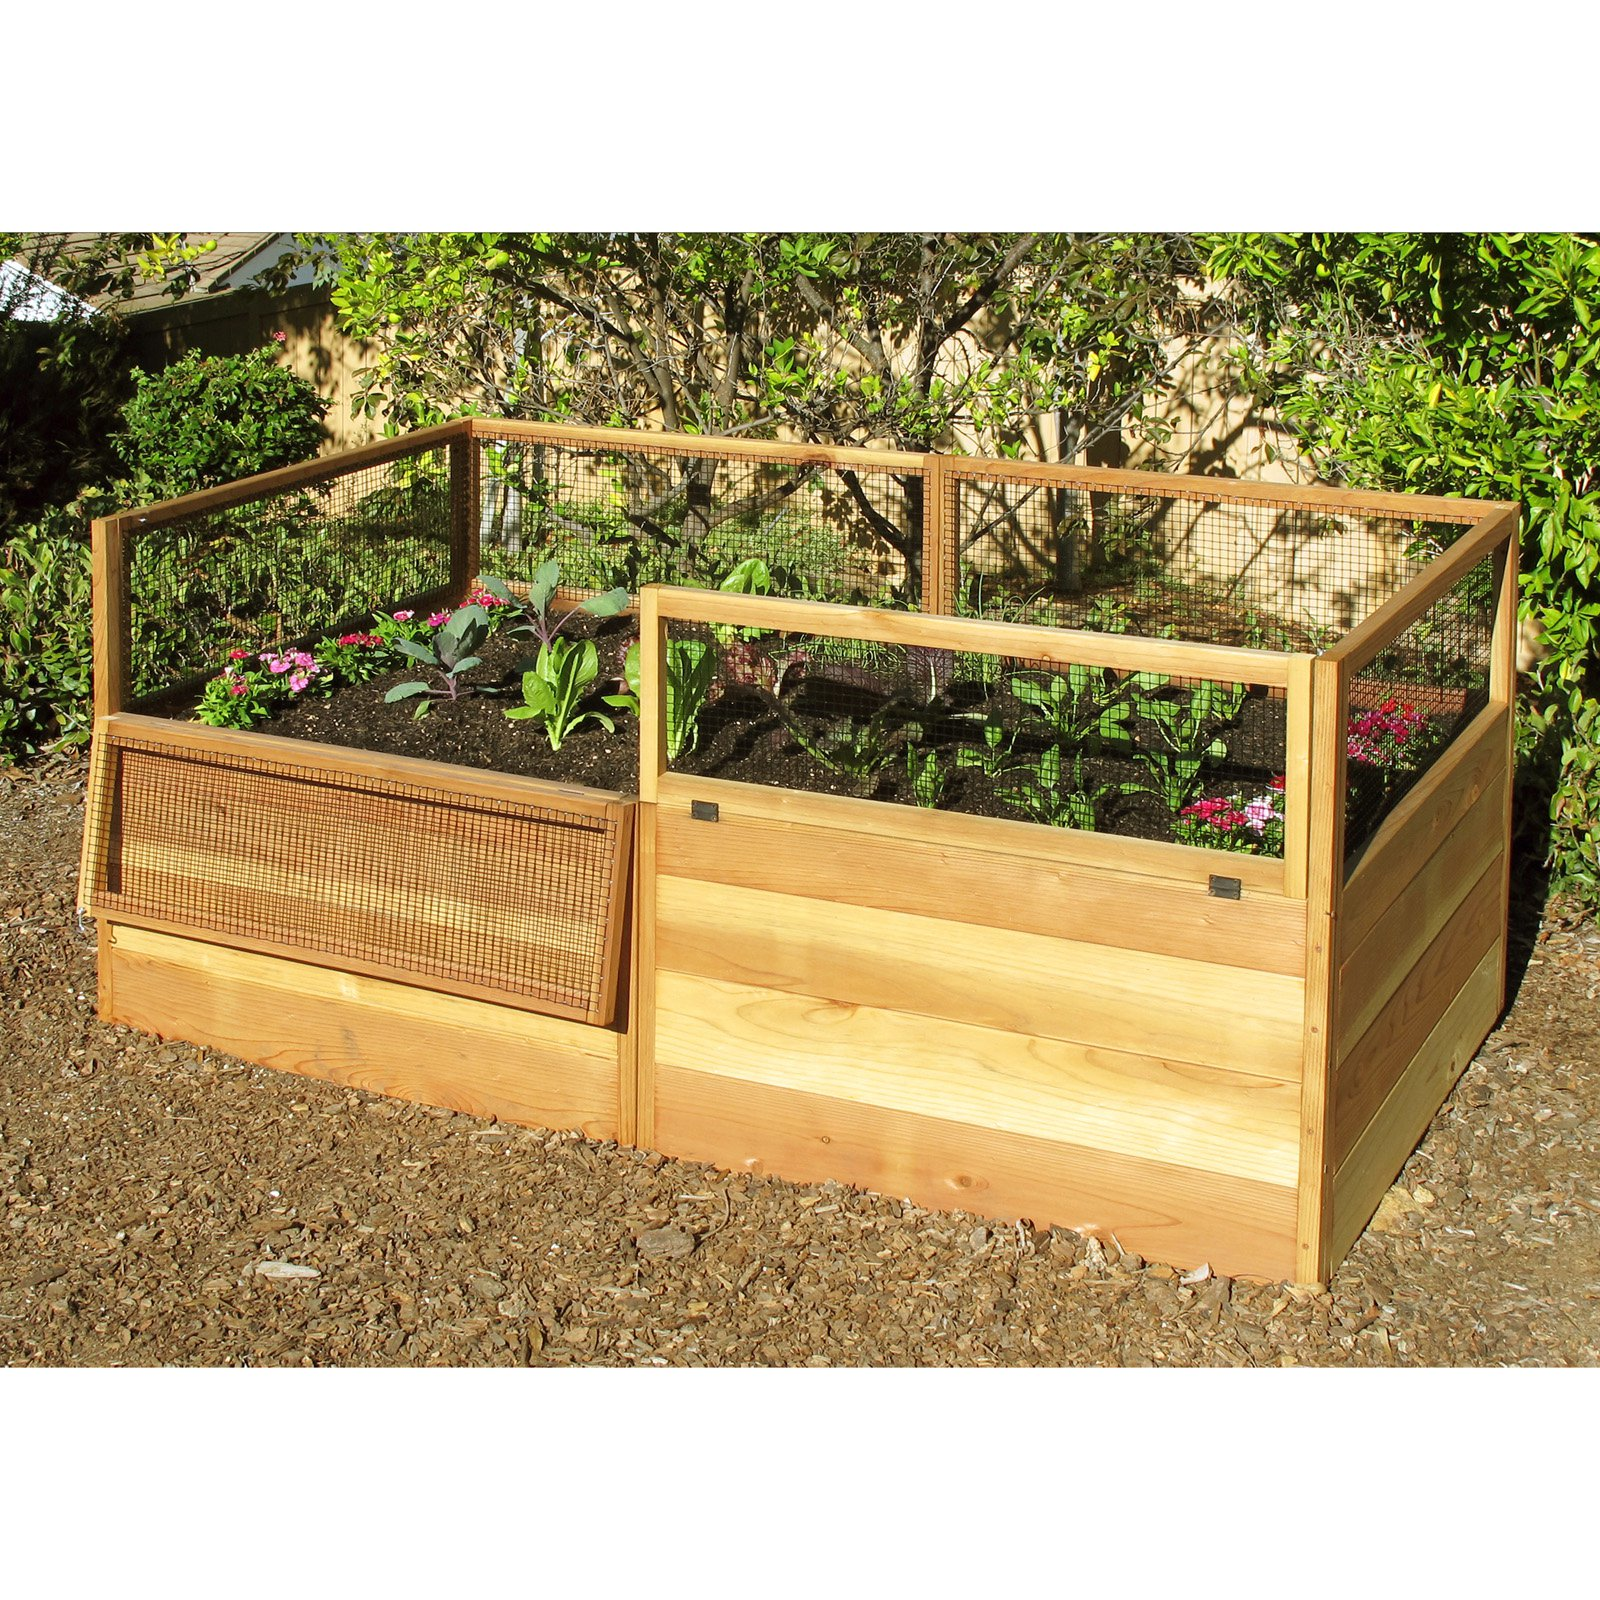 Gardens to Gro 3 x 6 ft. Raised Vegetable Garden Bed with Hinged Fencing on raised bed garden materials, gardening containers, large plastic garden containers, plastic raised garden containers, growing vegetables in containers, raised garden bed construction, raised garden kits, plans for raised garden containers, companion planting vegetables in containers, vegetable plants in containers, raised garden bed table, raised flower bed kits, raised planter beds, raised deck garden box, raised garden beds from pallets, raised garden bed corners, raised bed garden layouts, trailing plants for containers, recycled garden containers, growing zucchini in containers,